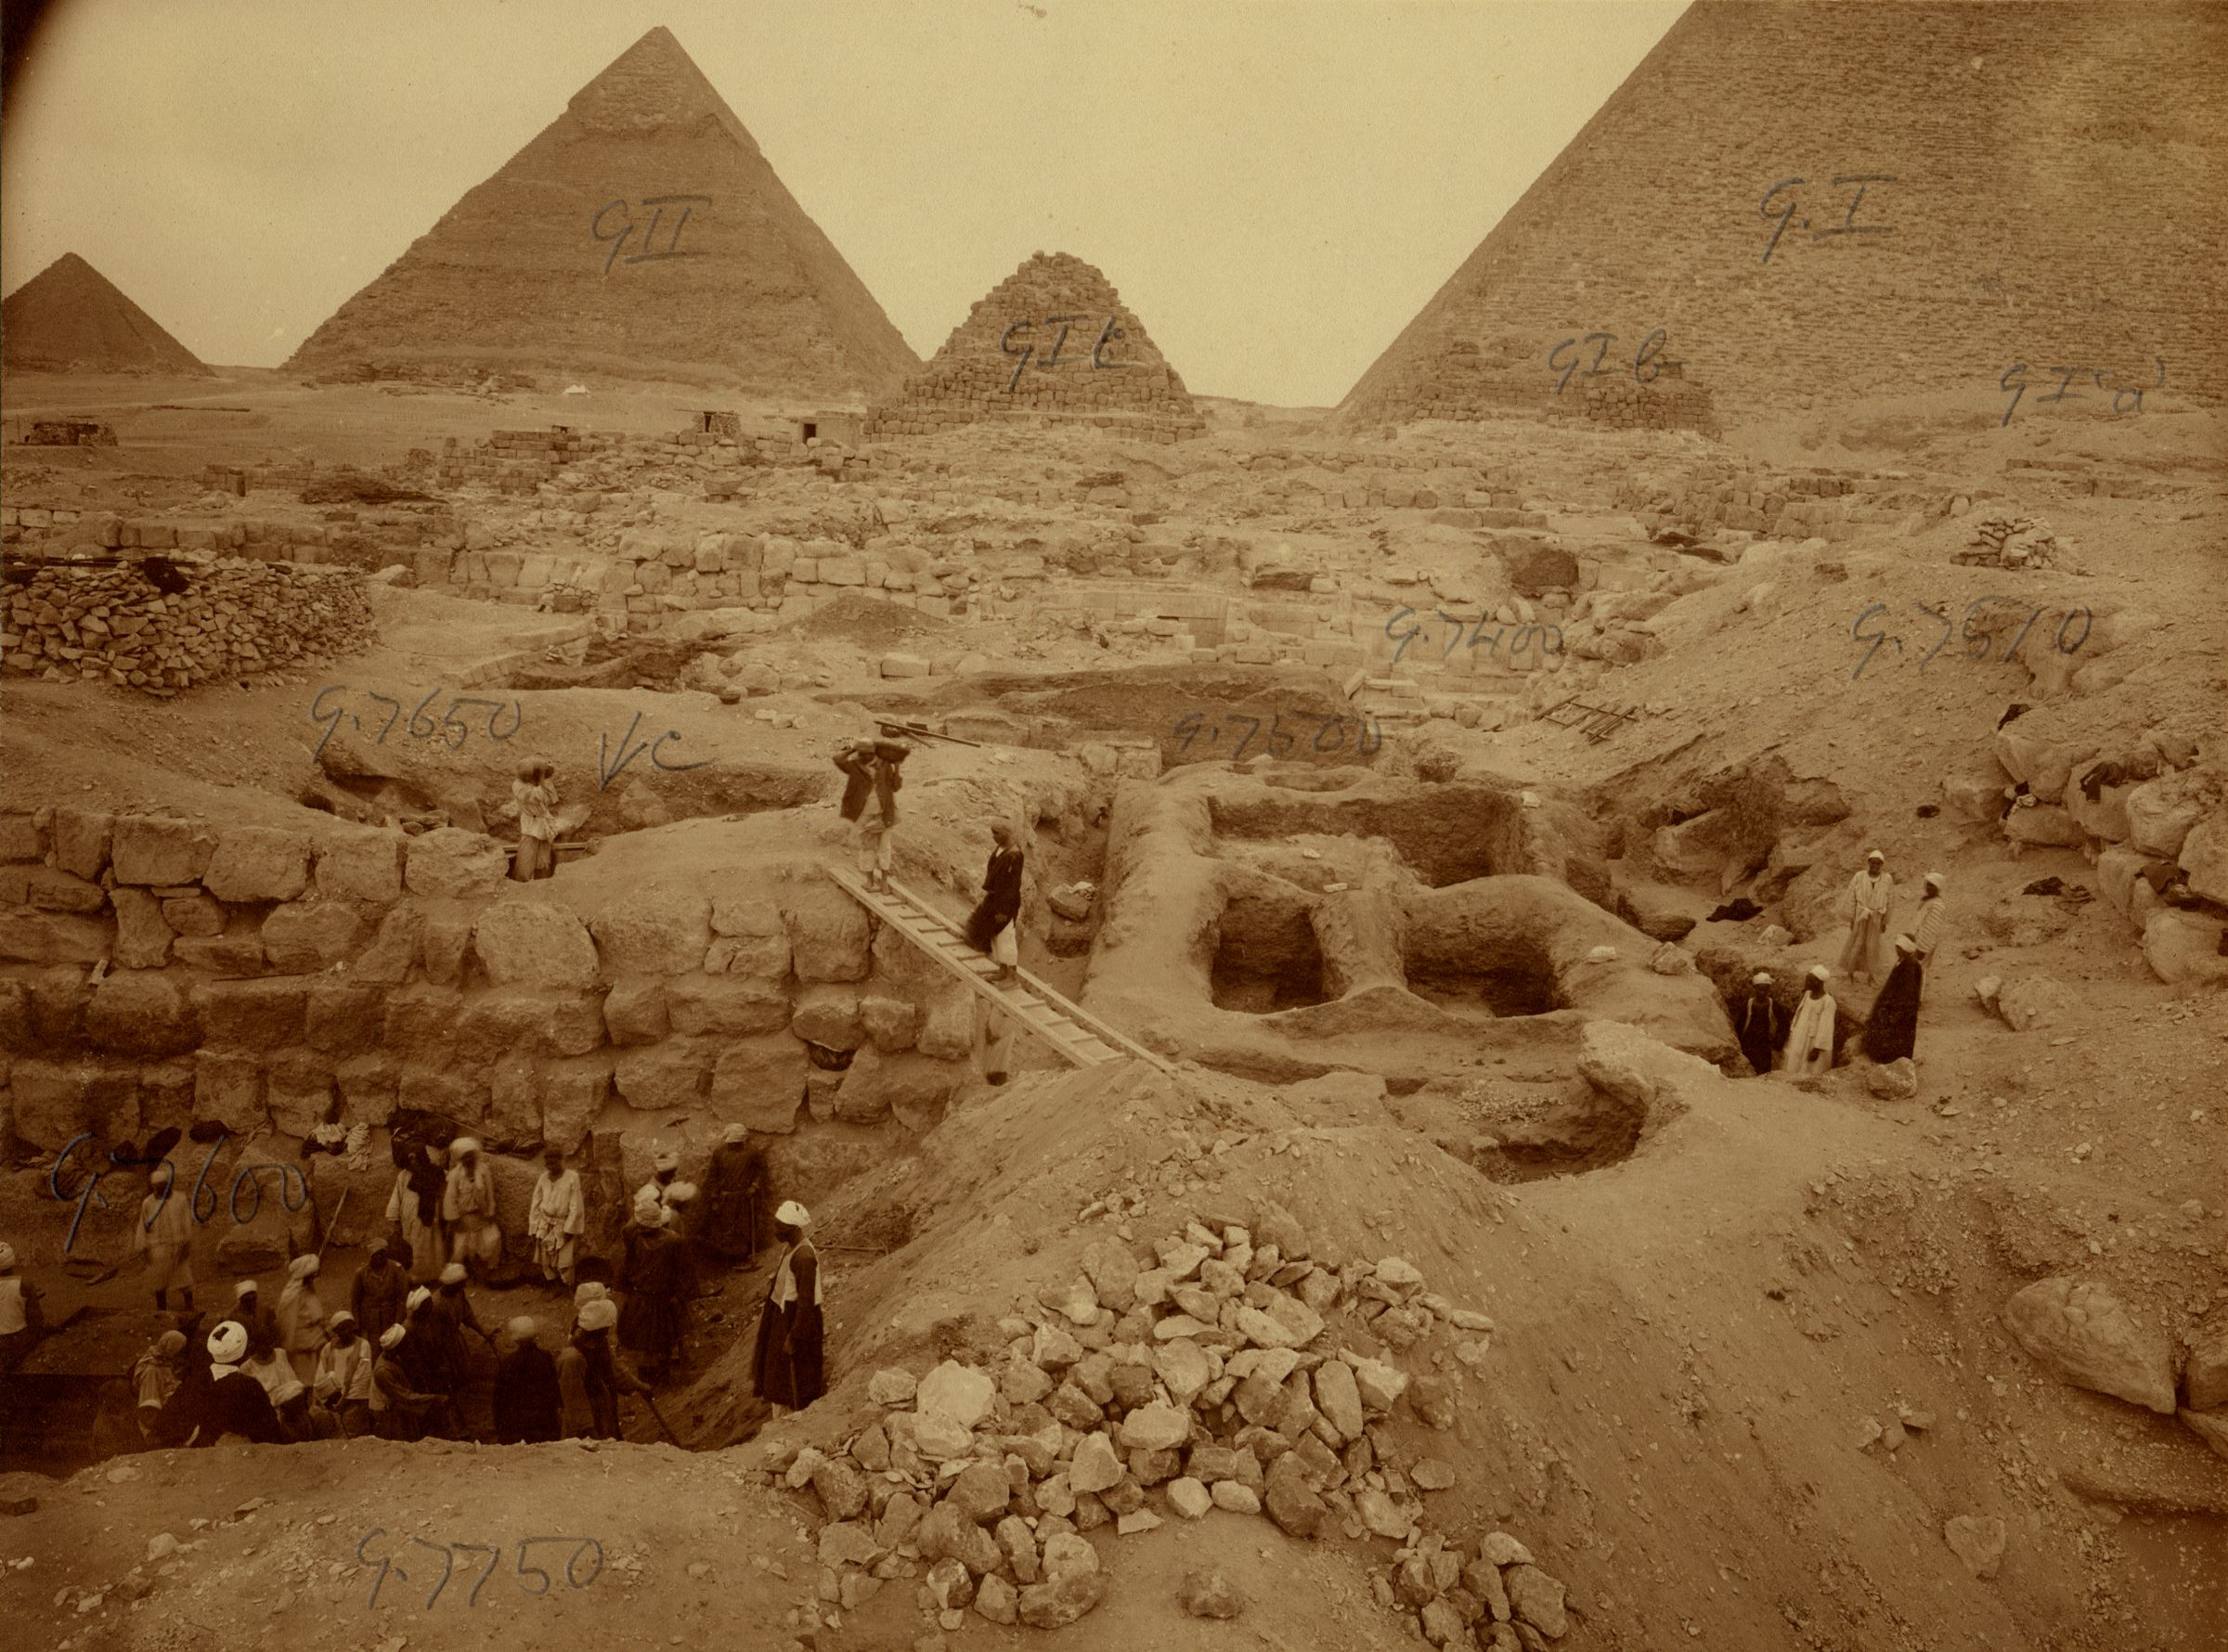 Eastern Cemetery: Site: Giza; View: G 7650, G 7651, G 7751, G 7510, street G 7400, street G 7500, street G 7600, G I, G I-a, G I-b, G I-c, G II